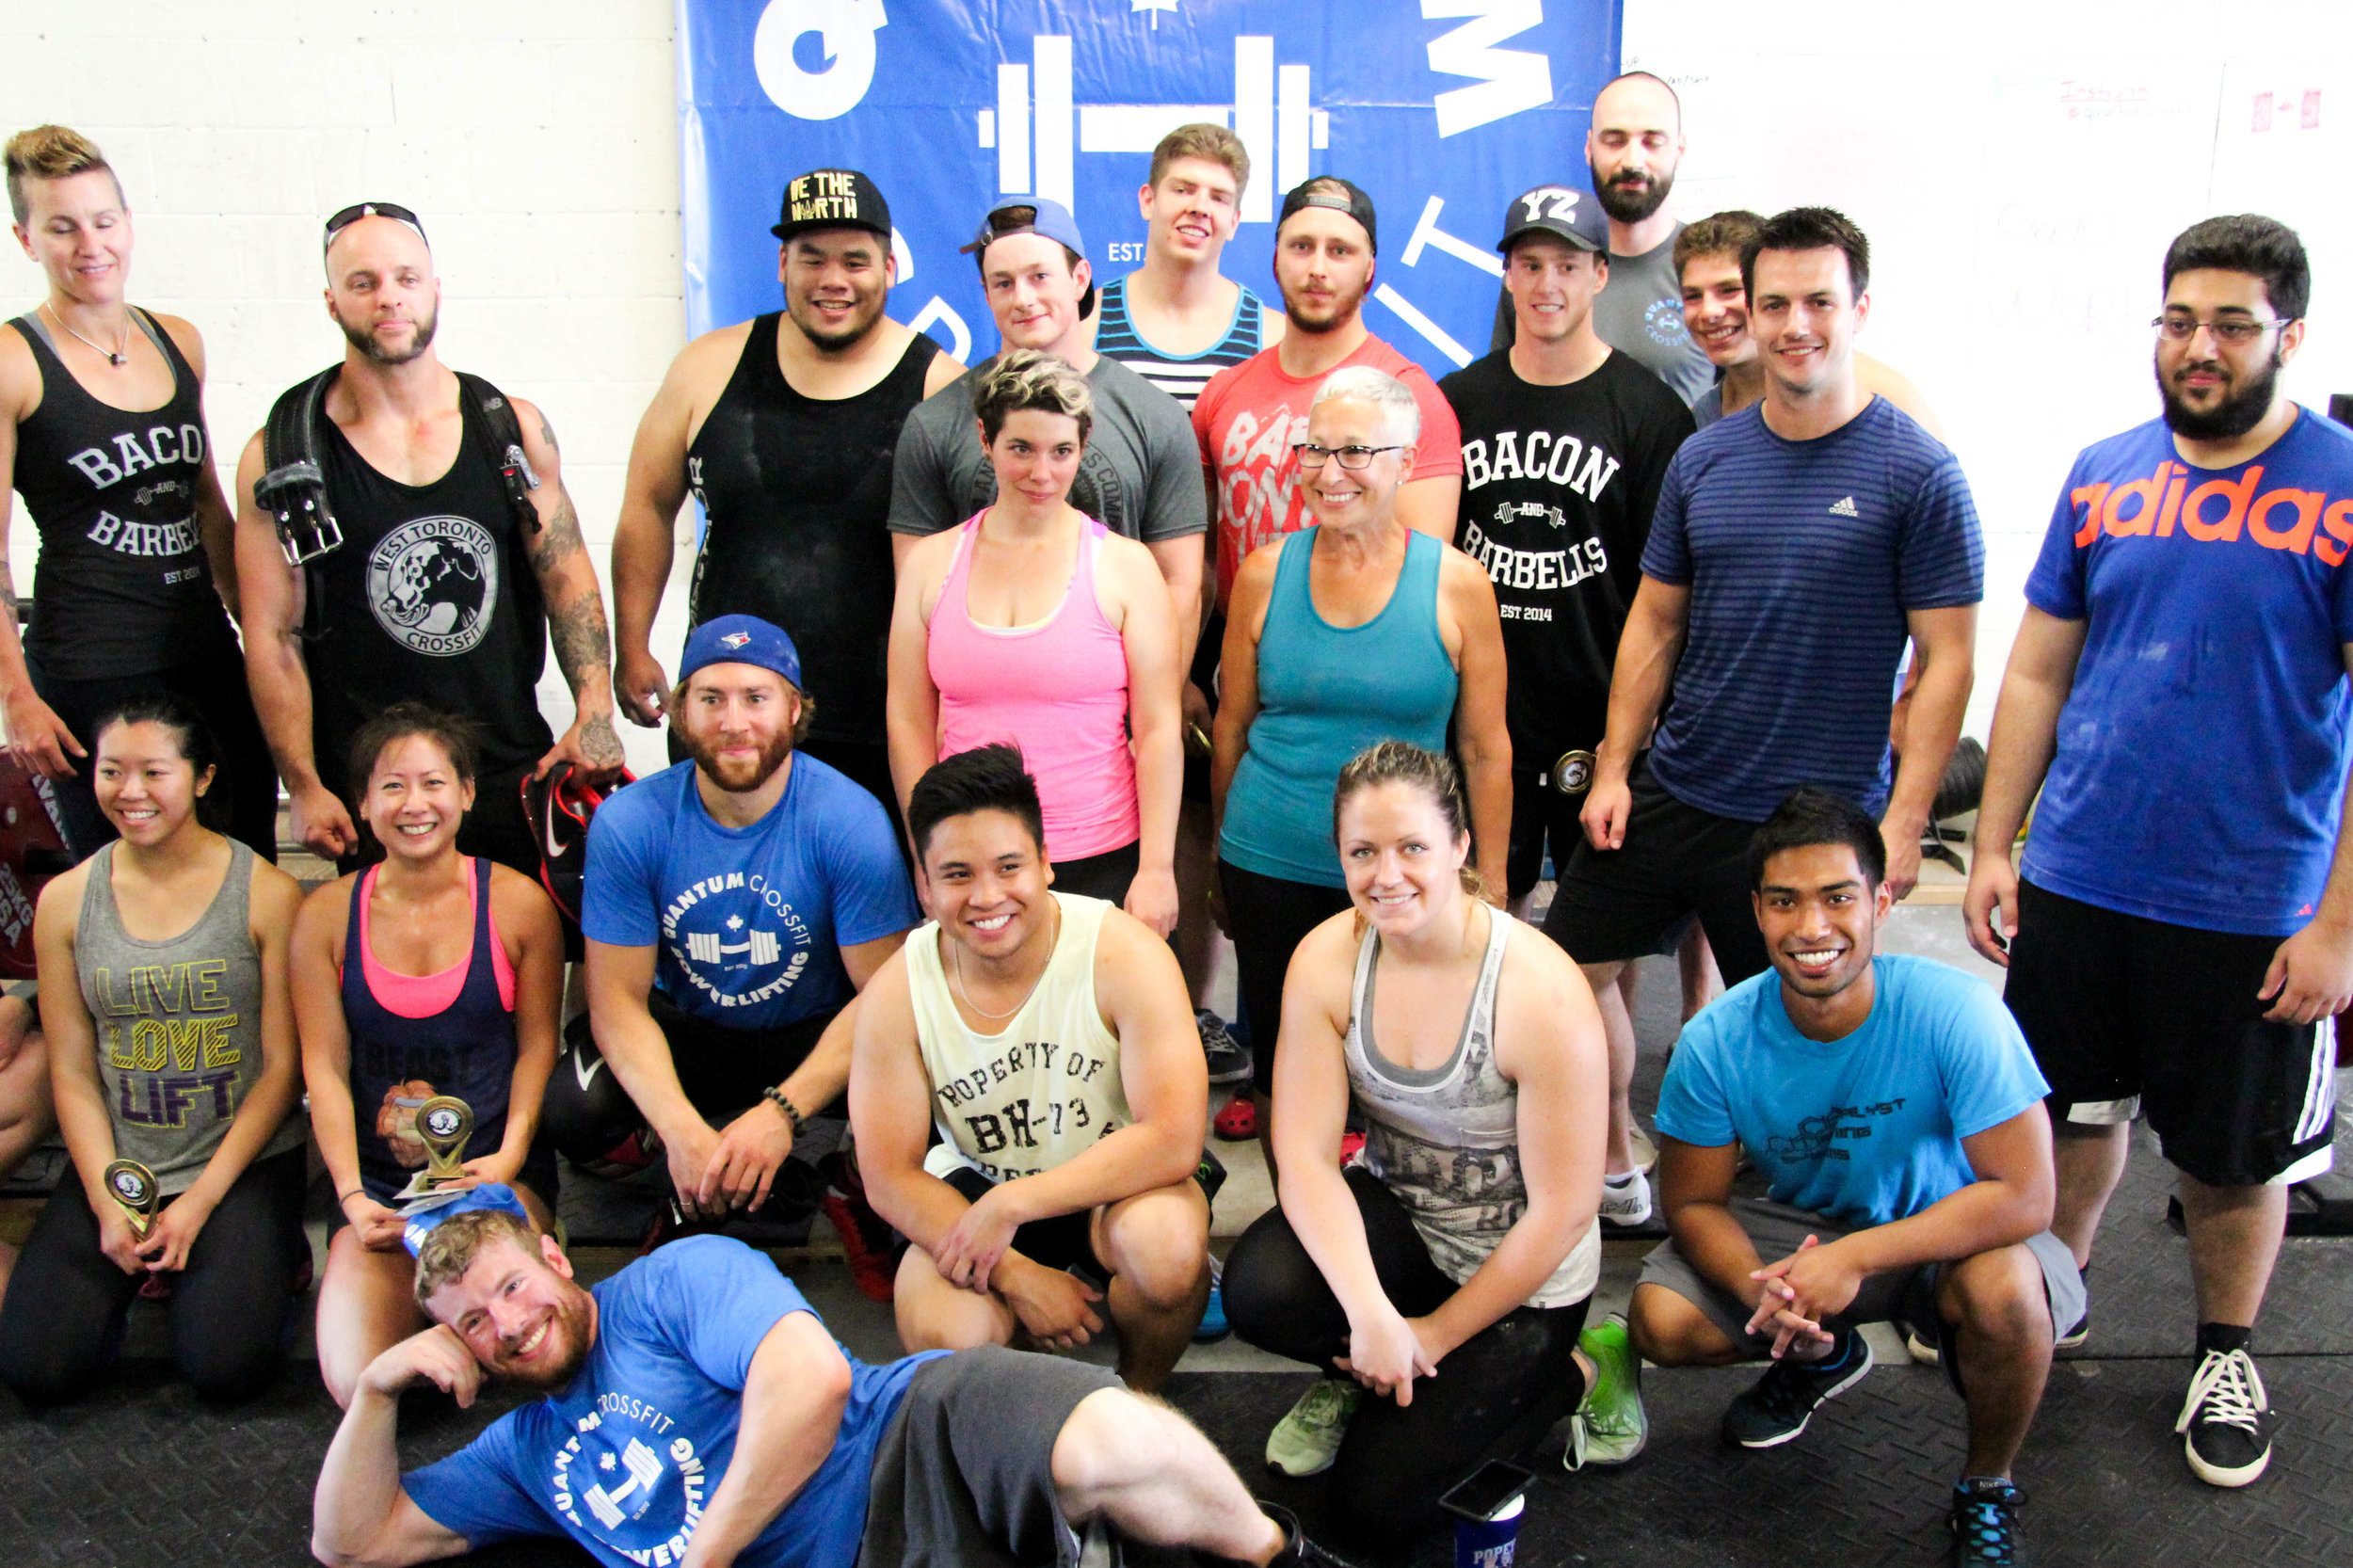 Peter's clients say what they love best about his gym, Quantum Crossfit, is the exceptionally fun, friendly, and supportive community atmosphere ... Peter couldn't be prouder of that!